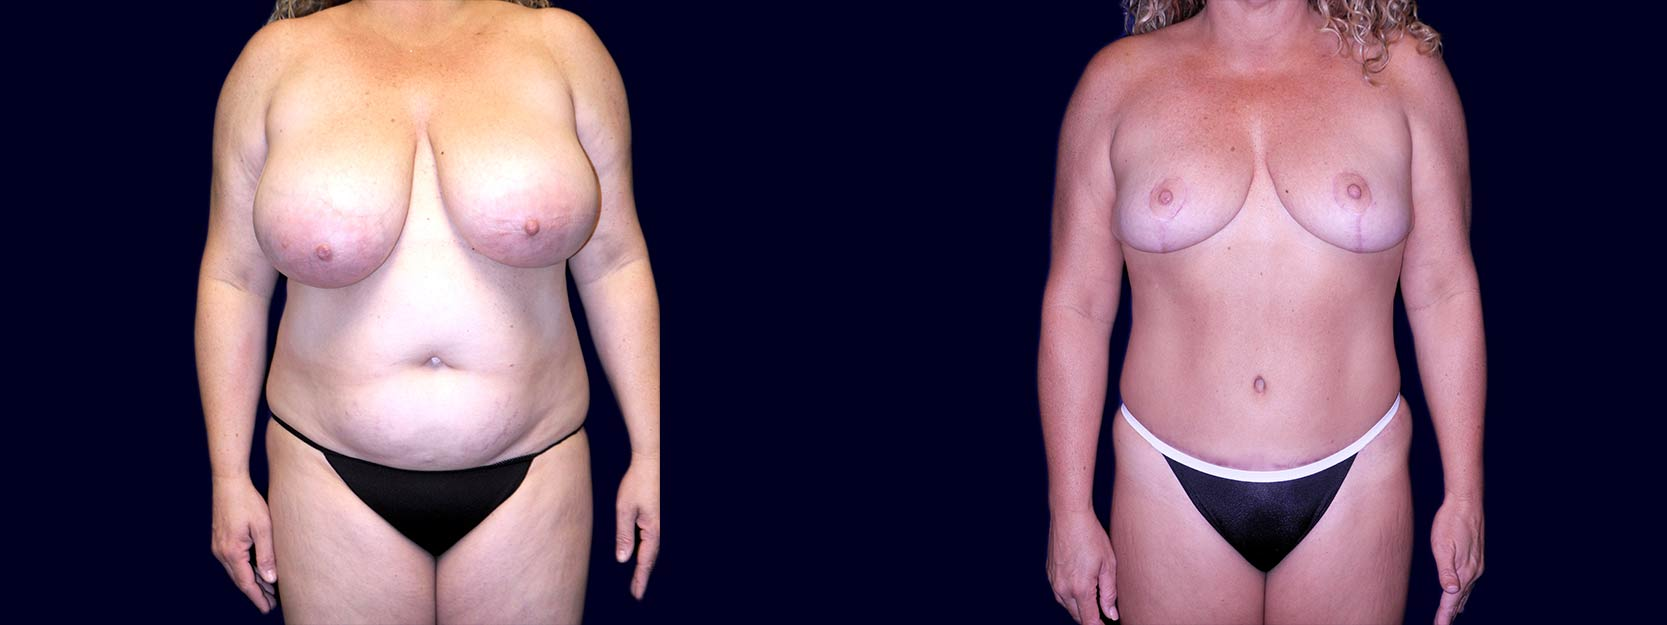 Frontal View - Breast Reduction and Tummy Tuck After Pregnancy